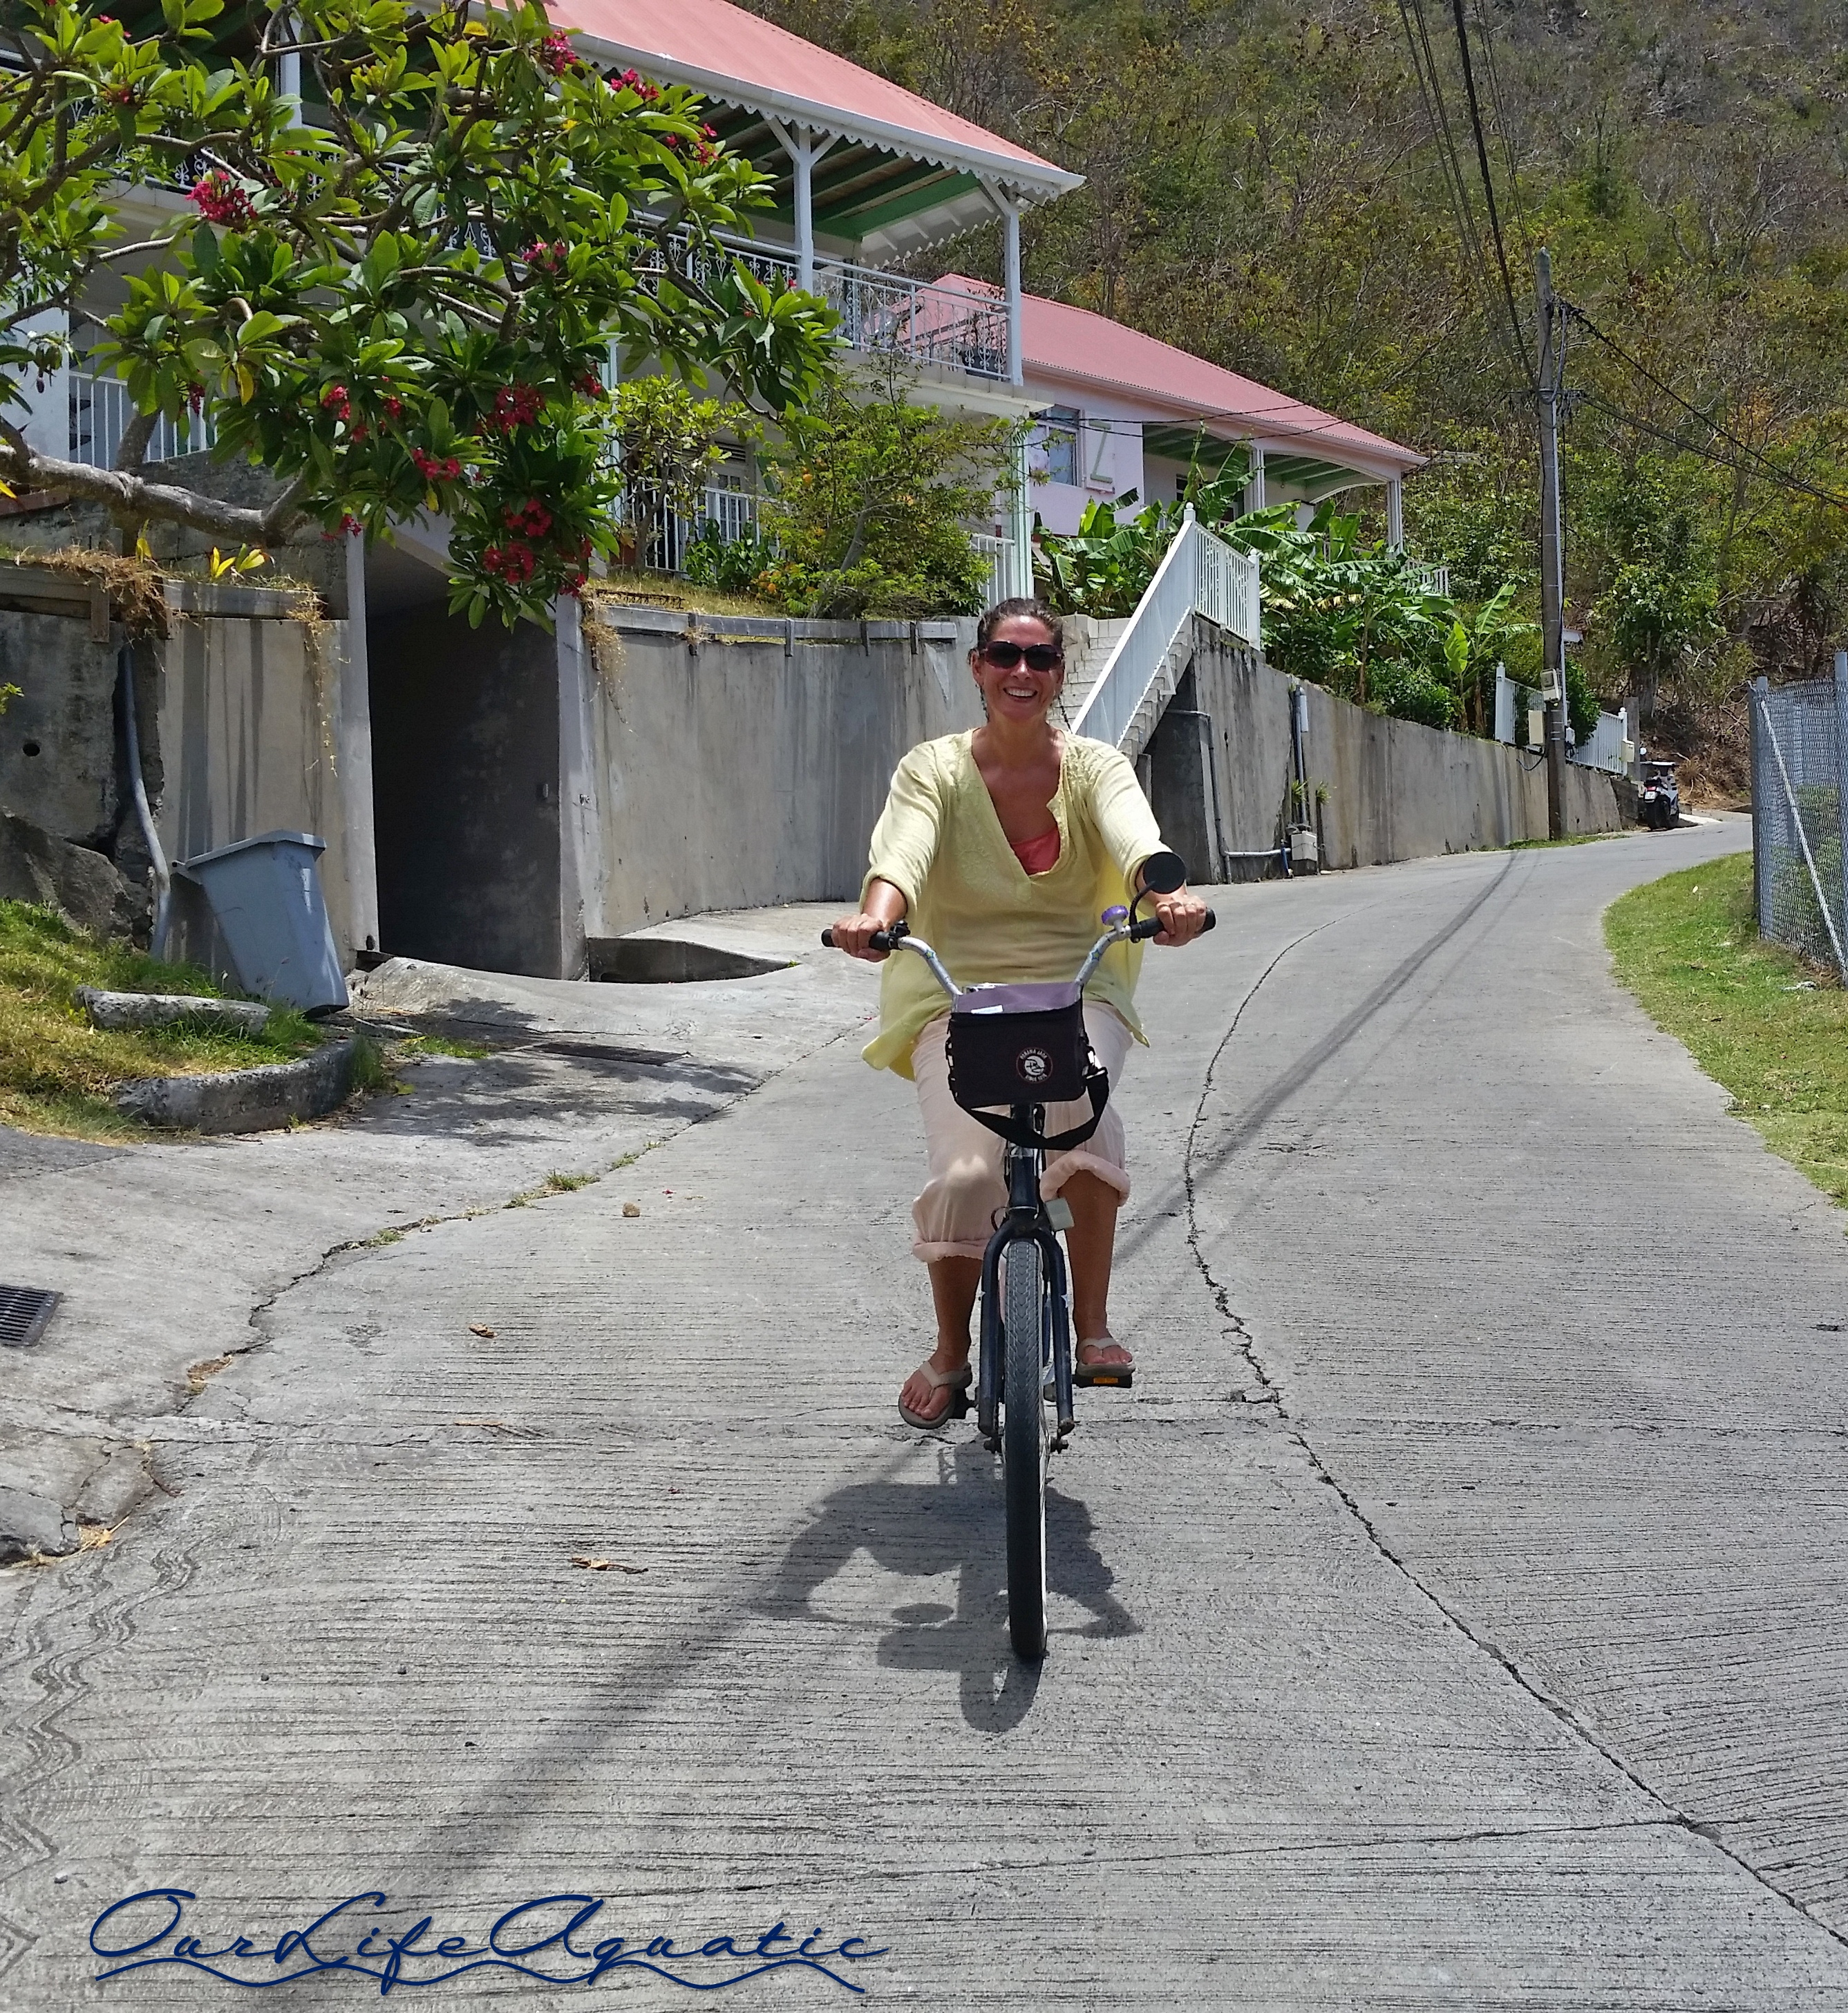 We got our bikes out to tour Îles des Saintes